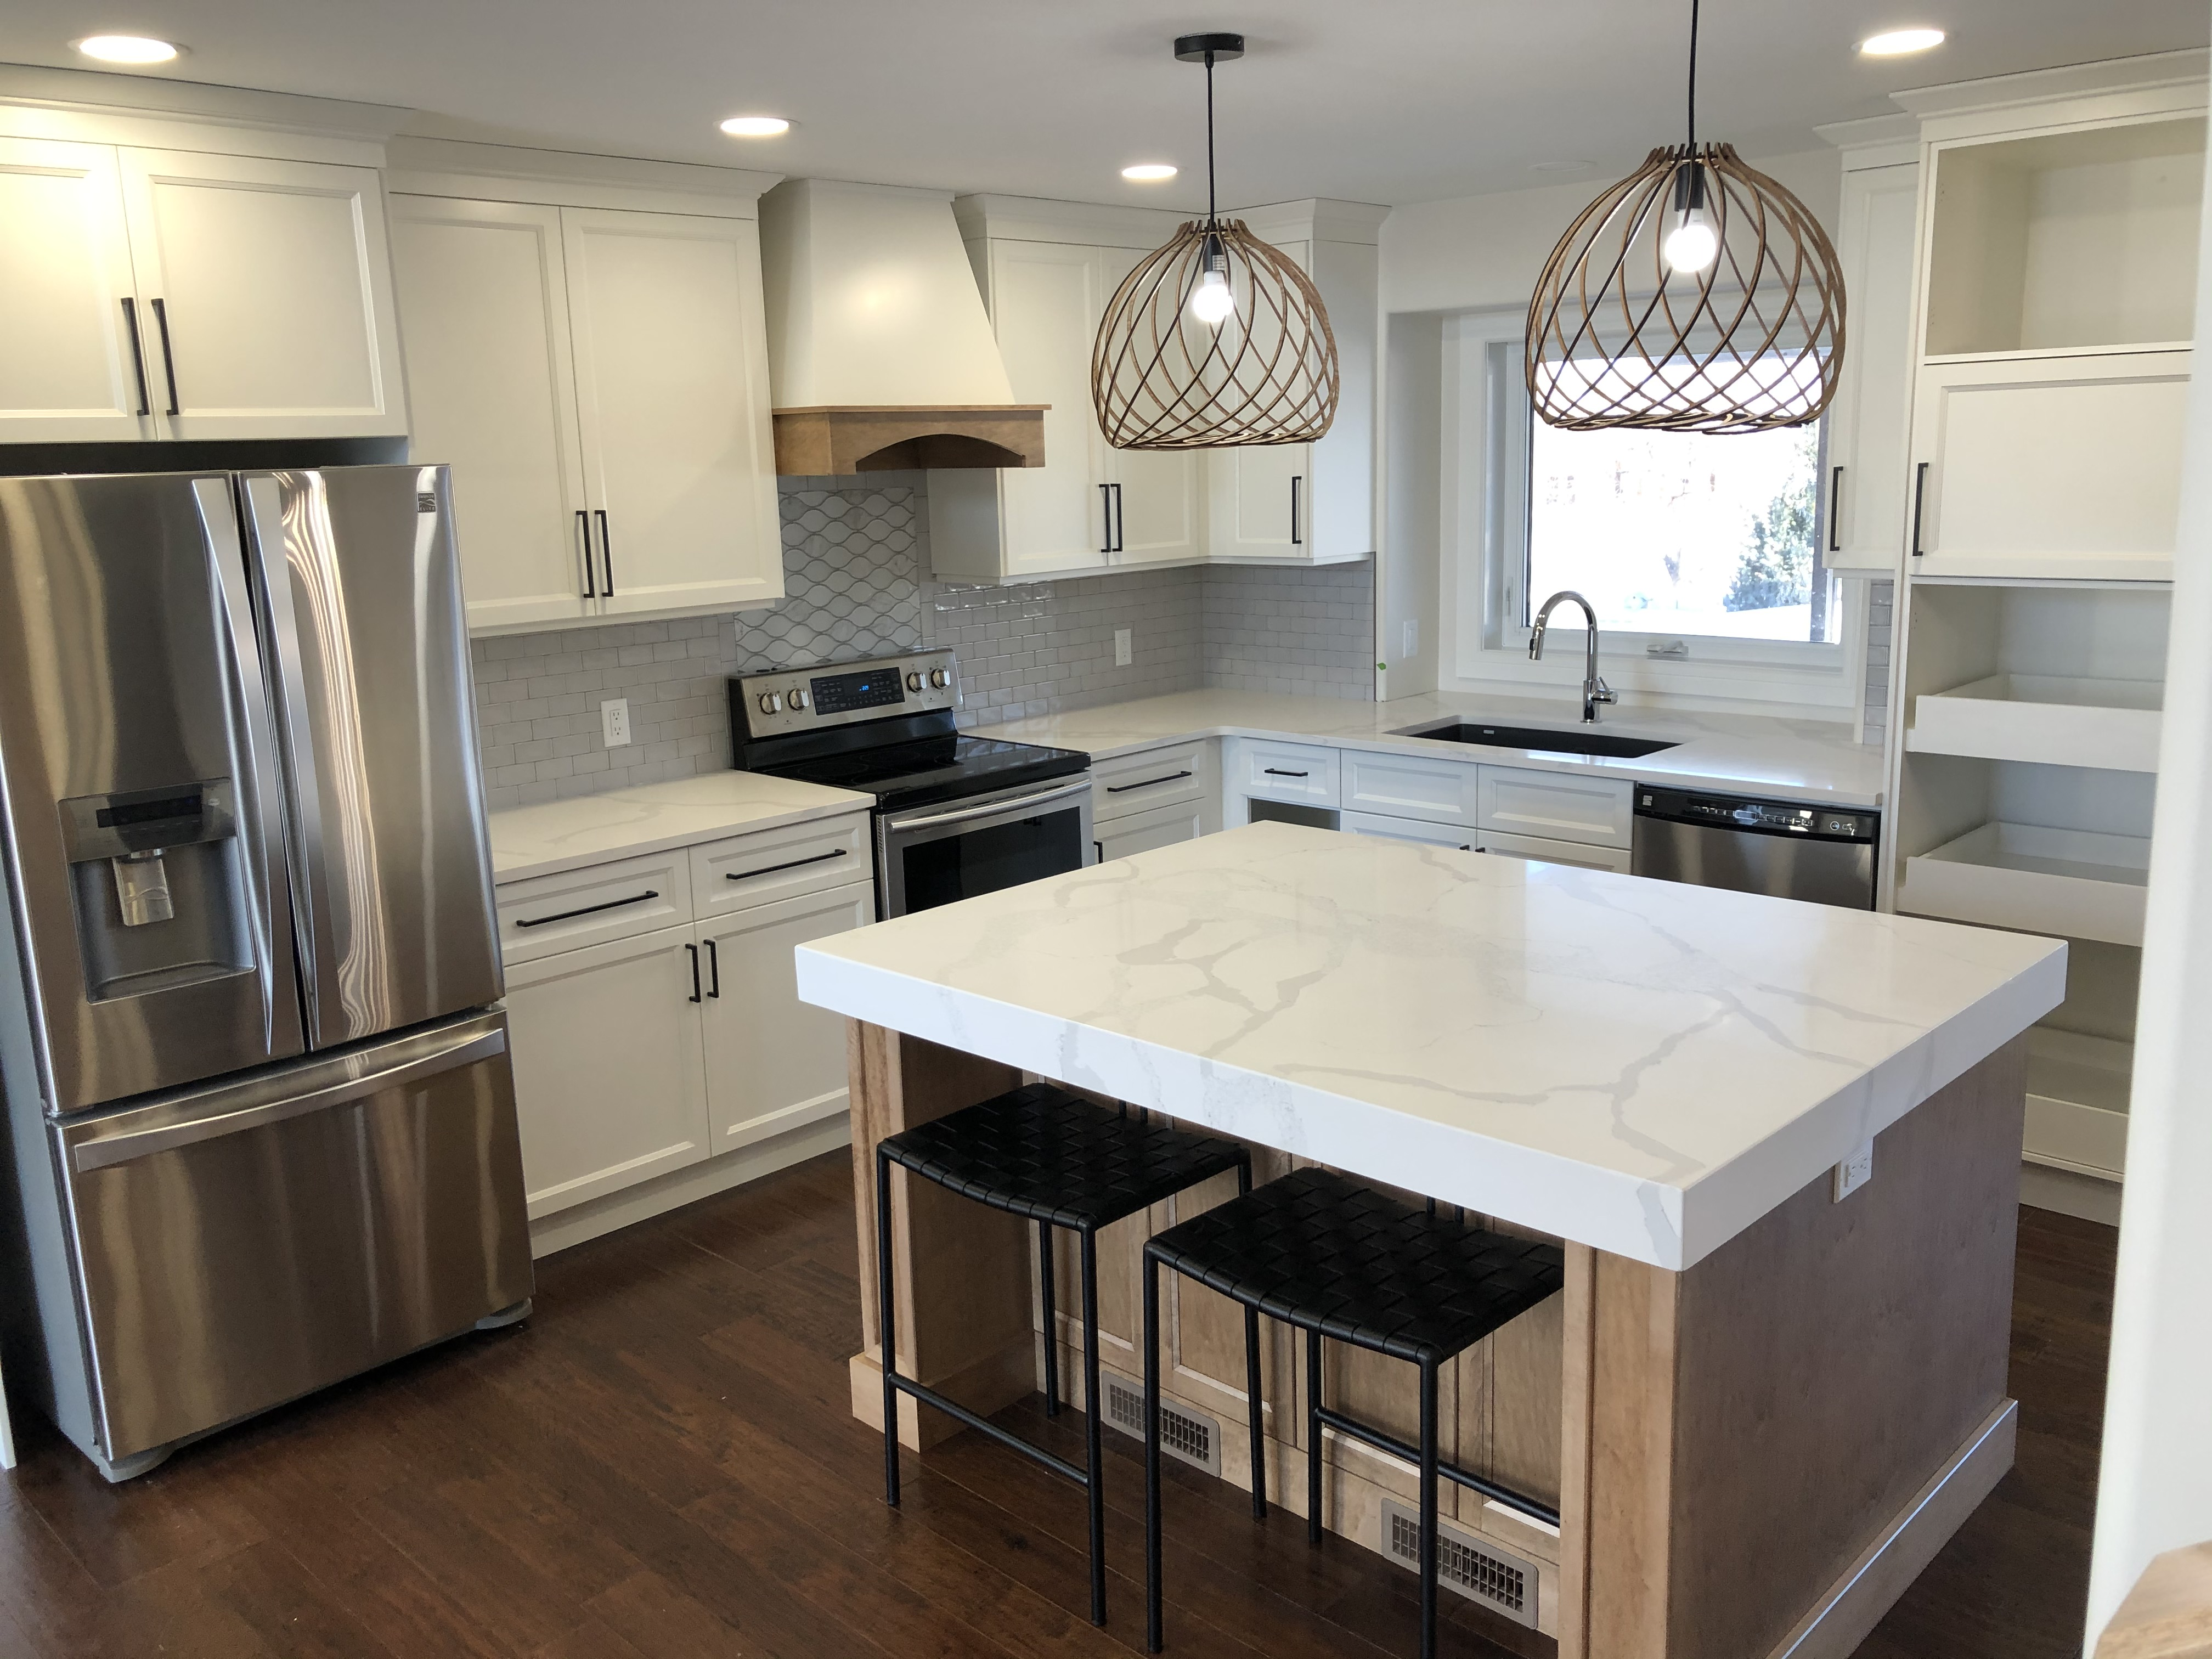 view of an island kitchen countertop 2